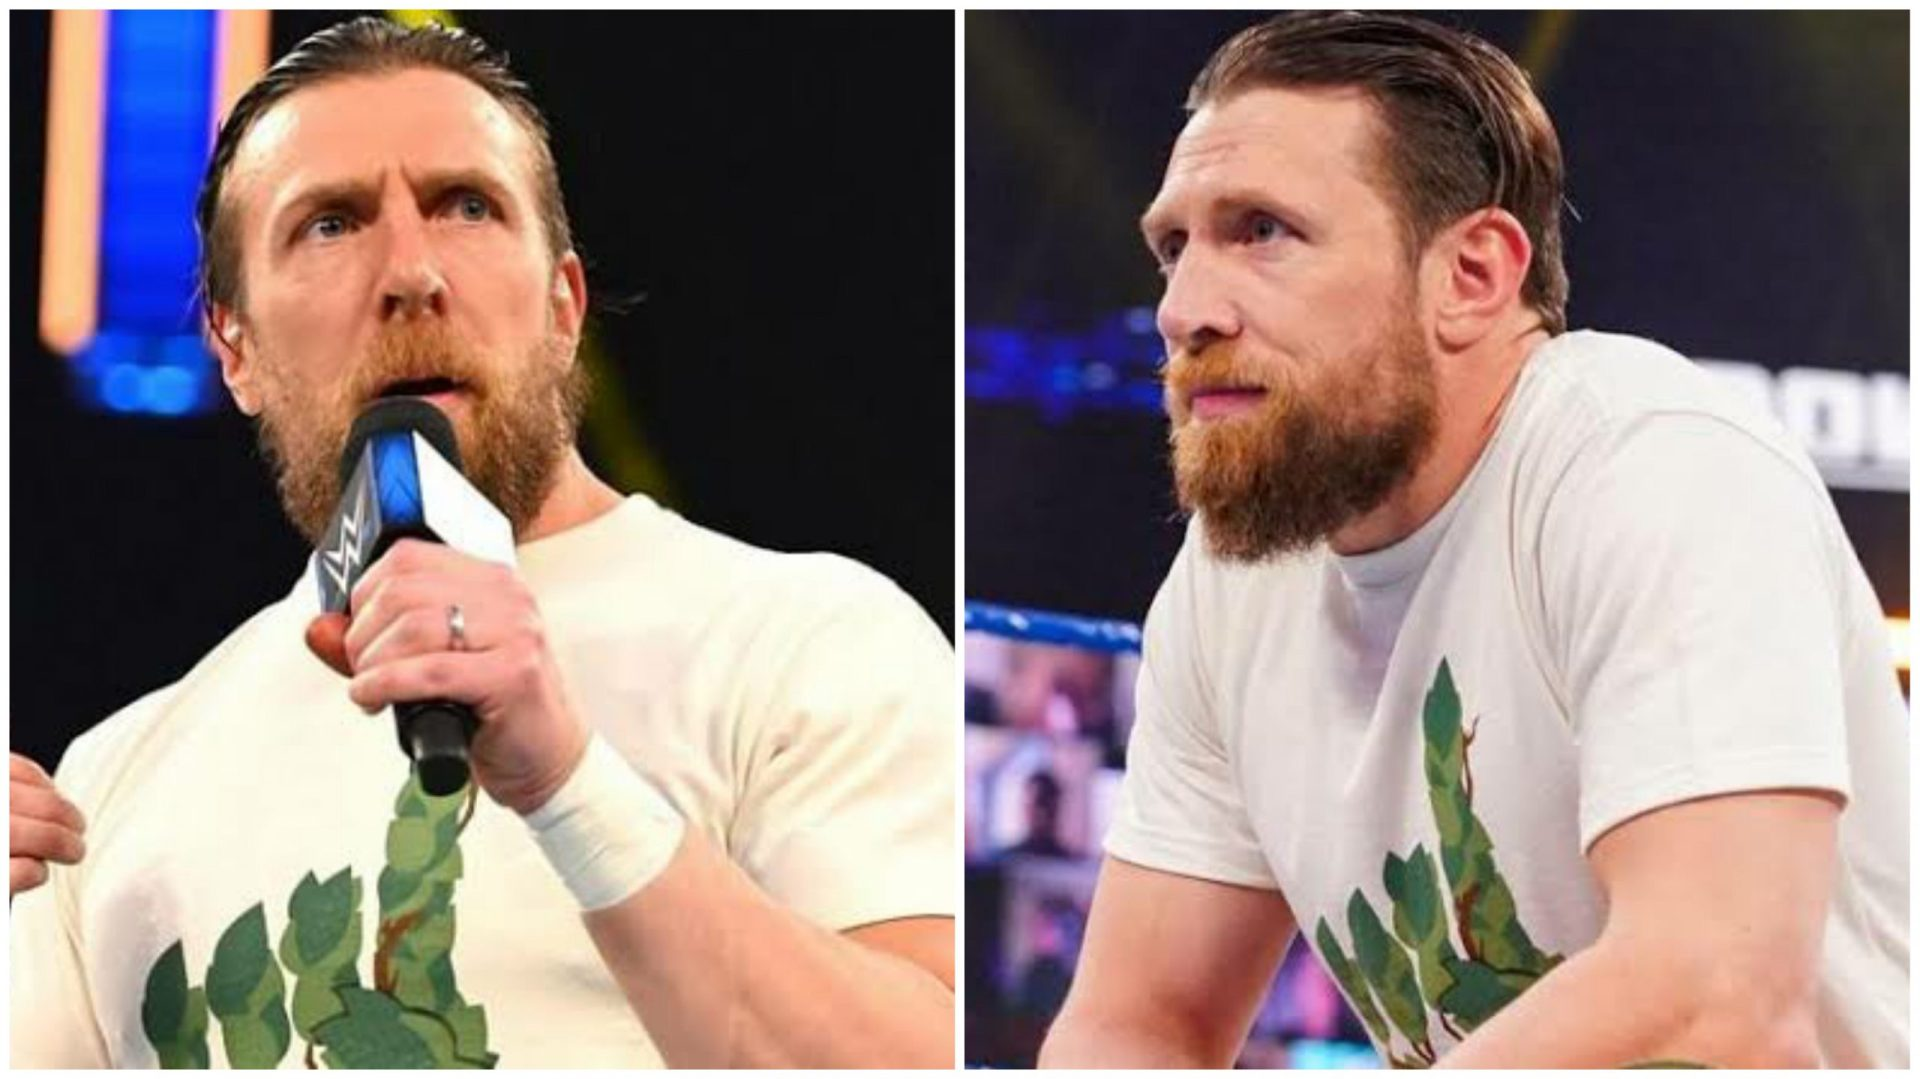 Daniel Bryan moved to alumni section of WWE website - THE SPORTS ROOM